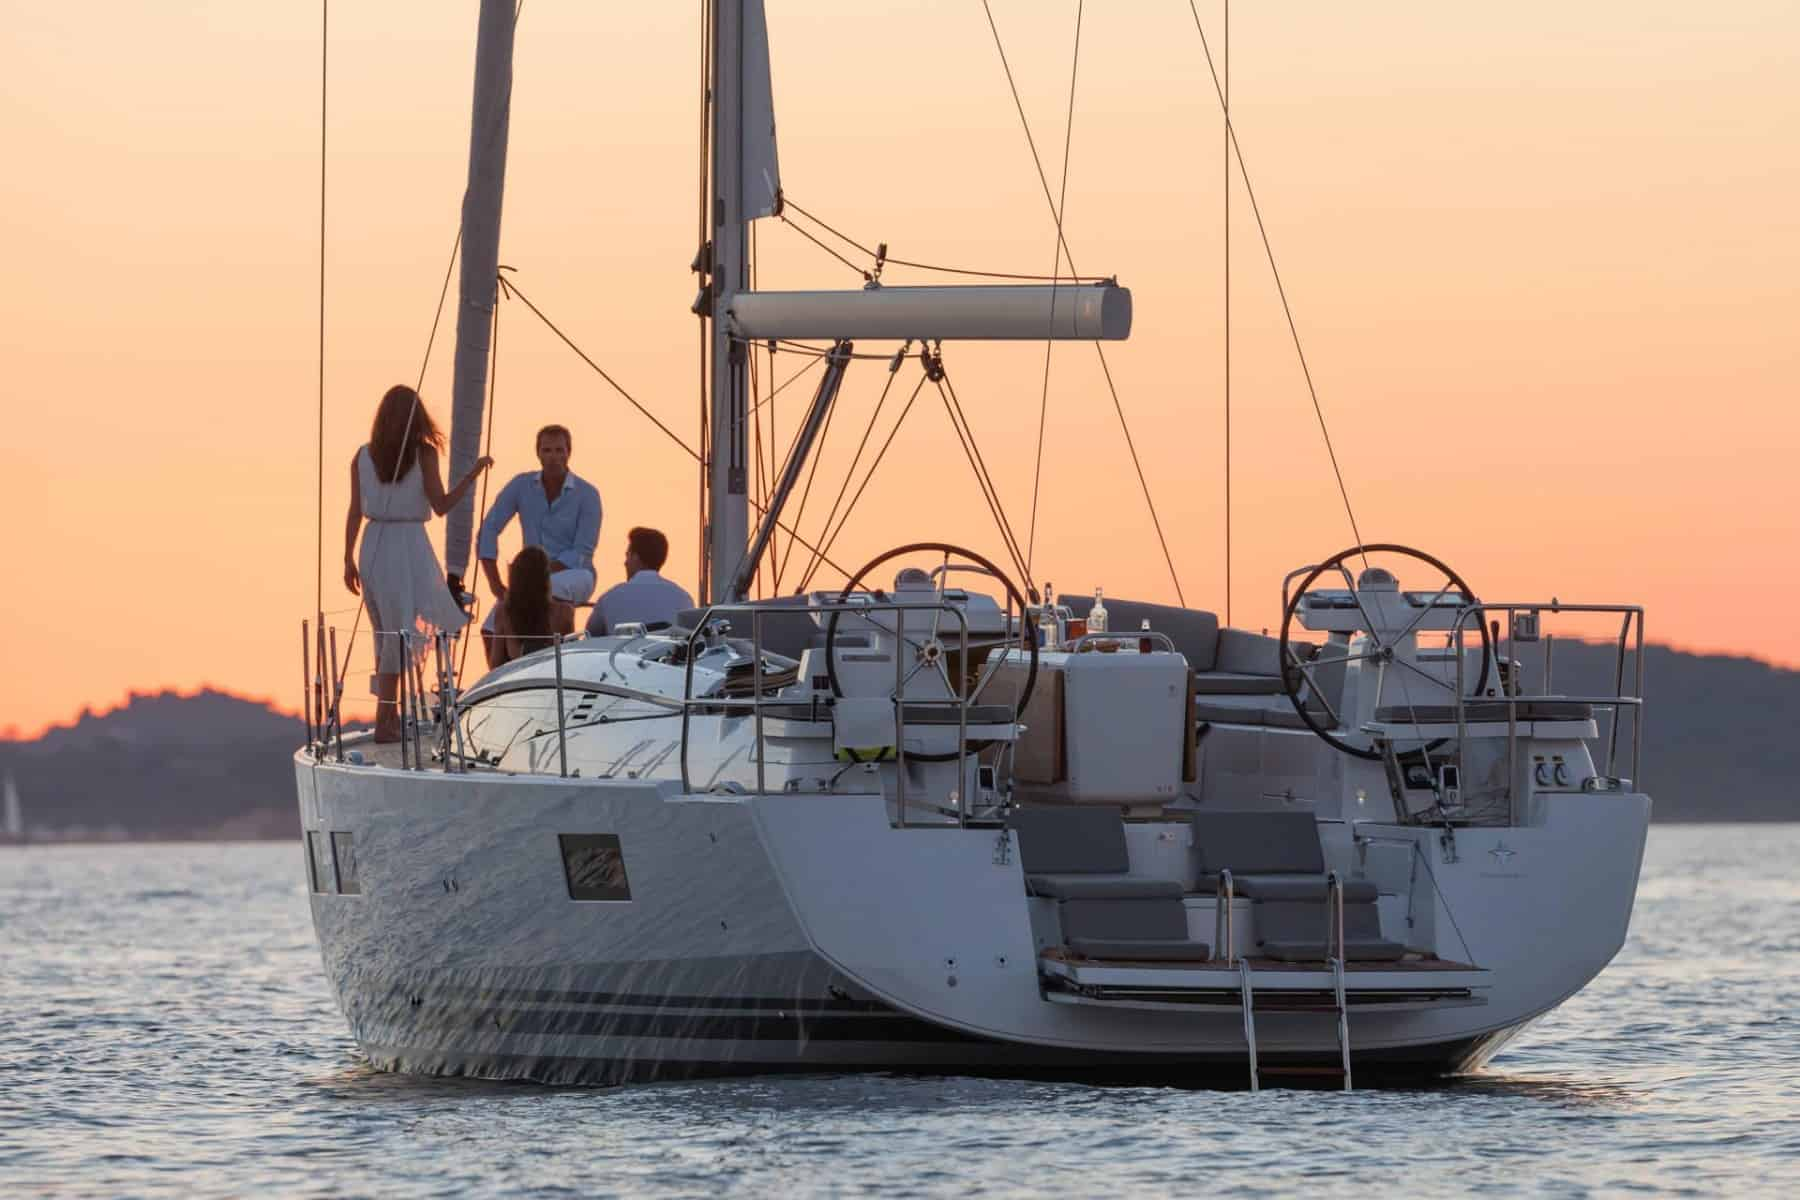 Jeanneau-51-exterior-10-charter-ownership-yacht